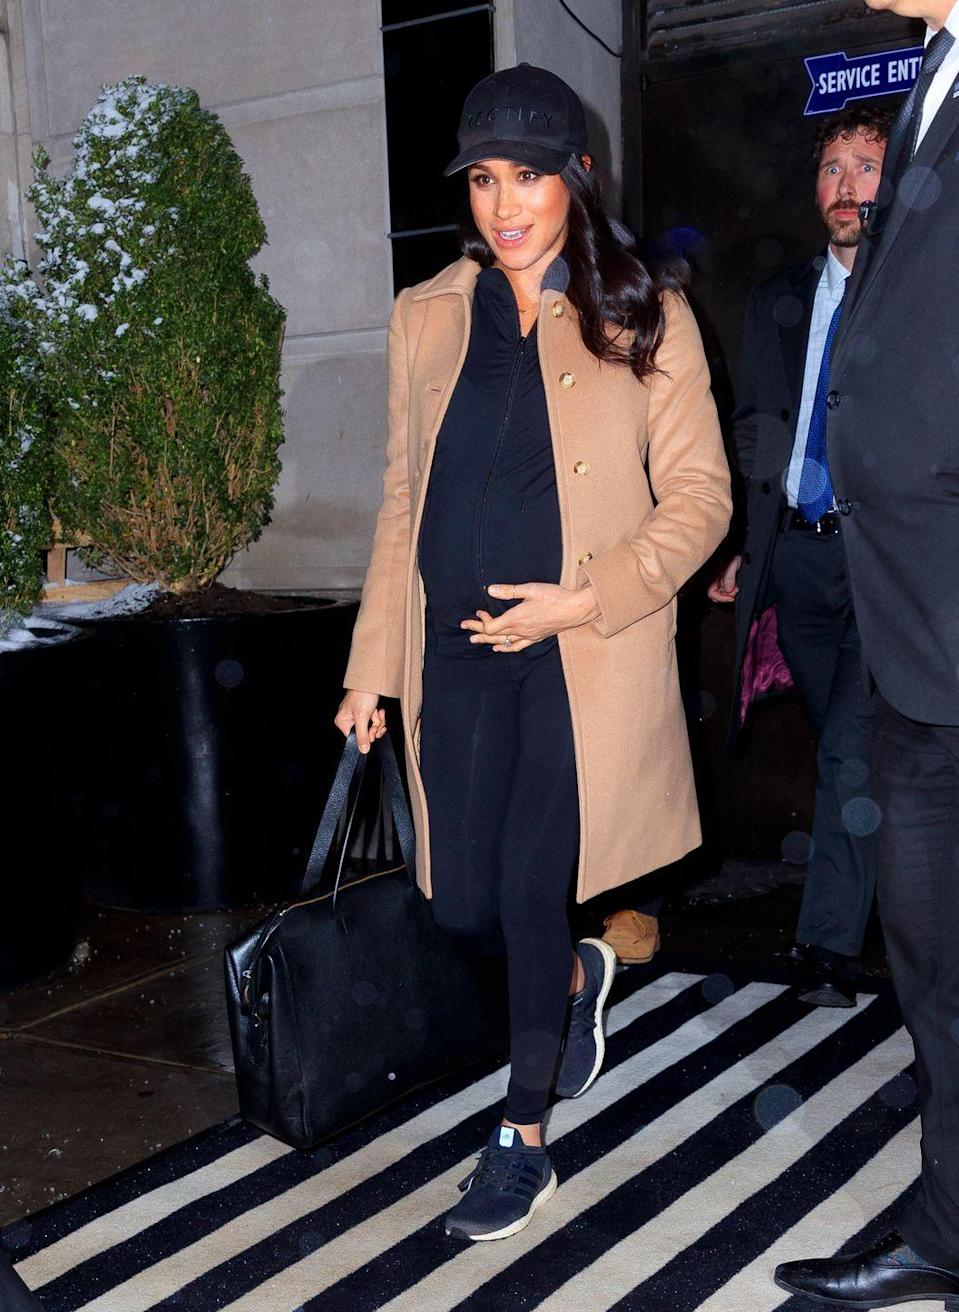 """<p>From arrival to departure, Meghan Markle's expensive and celebrity-filled <a href=""""https://www.elle.com/culture/celebrities/a28223685/meghan-markle-new-york-baby-shower-backlash-feelings/"""" rel=""""nofollow noopener"""" target=""""_blank"""" data-ylk=""""slk:baby shower attracted all kinds of negative press"""" class=""""link rapid-noclick-resp"""">baby shower attracted all kinds of negative press</a>. But it was her <a href=""""https://www.purewow.com/news/meghan-markle-wears-leggings-departing-nyc"""" rel=""""nofollow noopener"""" target=""""_blank"""" data-ylk=""""slk:athleisure outfit"""" class=""""link rapid-noclick-resp"""">athleisure outfit</a> that she wore when she was leaving New York City that had people talking the most.</p>"""